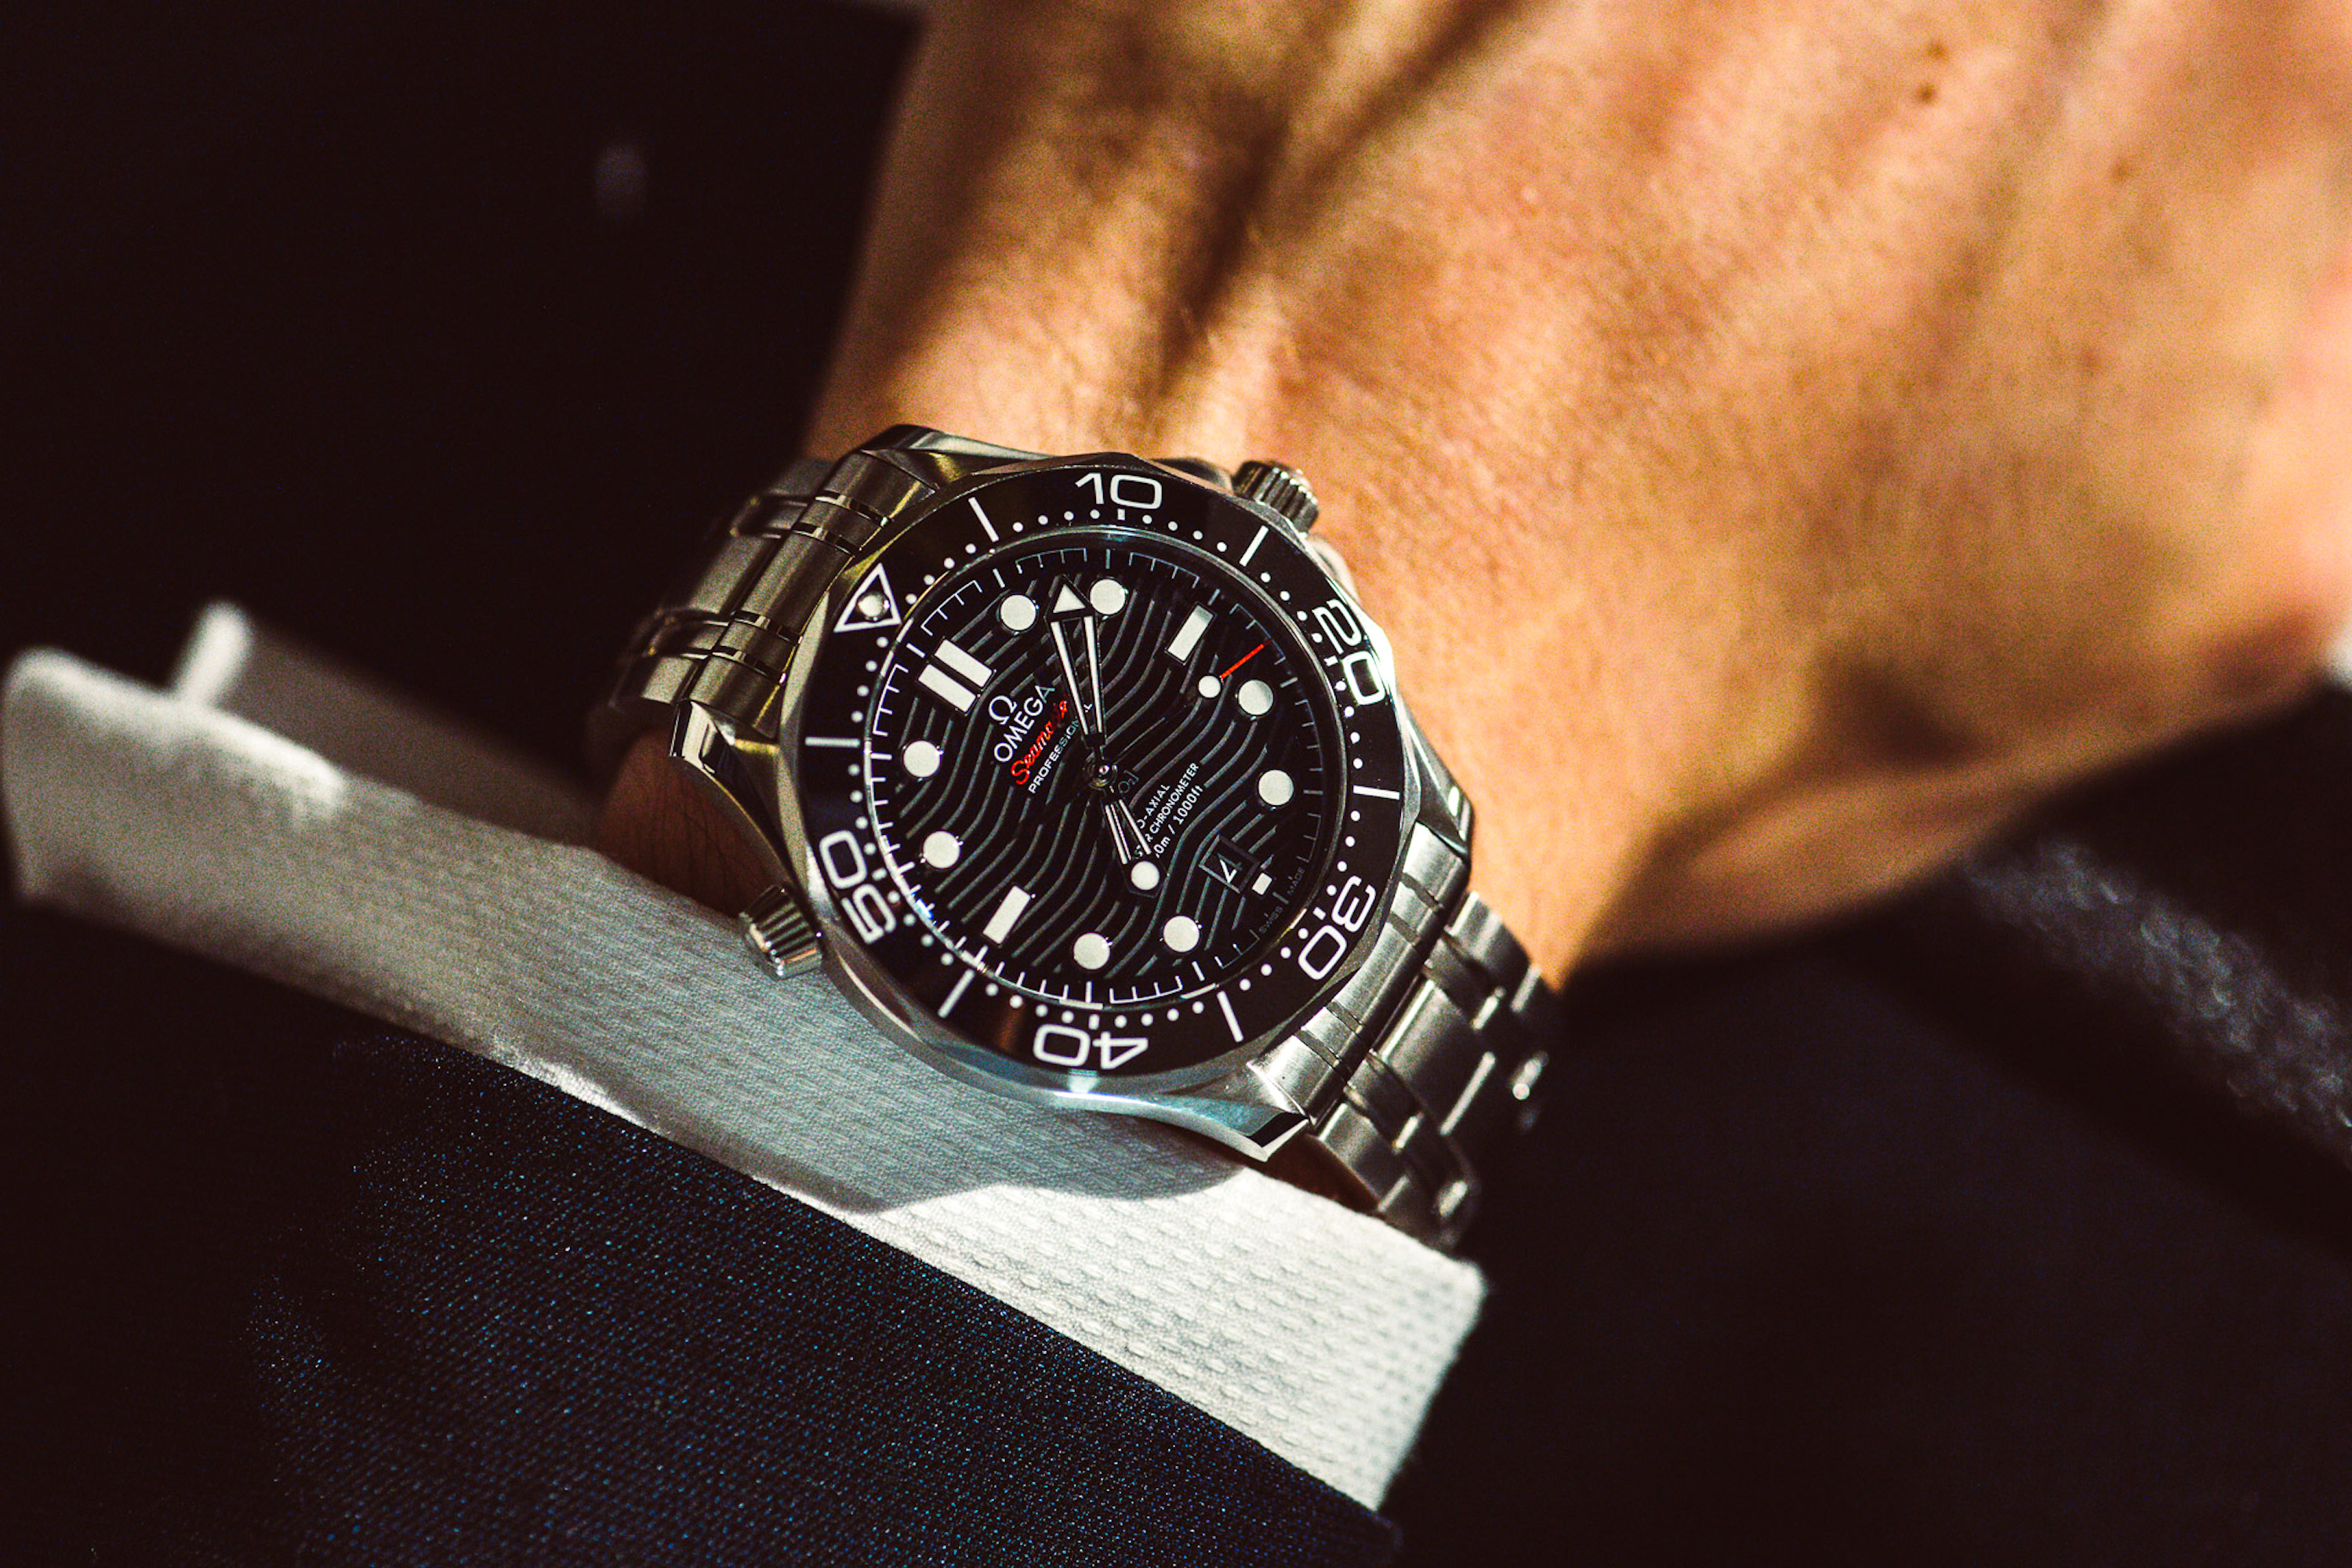 Wrist Watch: 5 of our favourite timepieces spotted in the wild this October